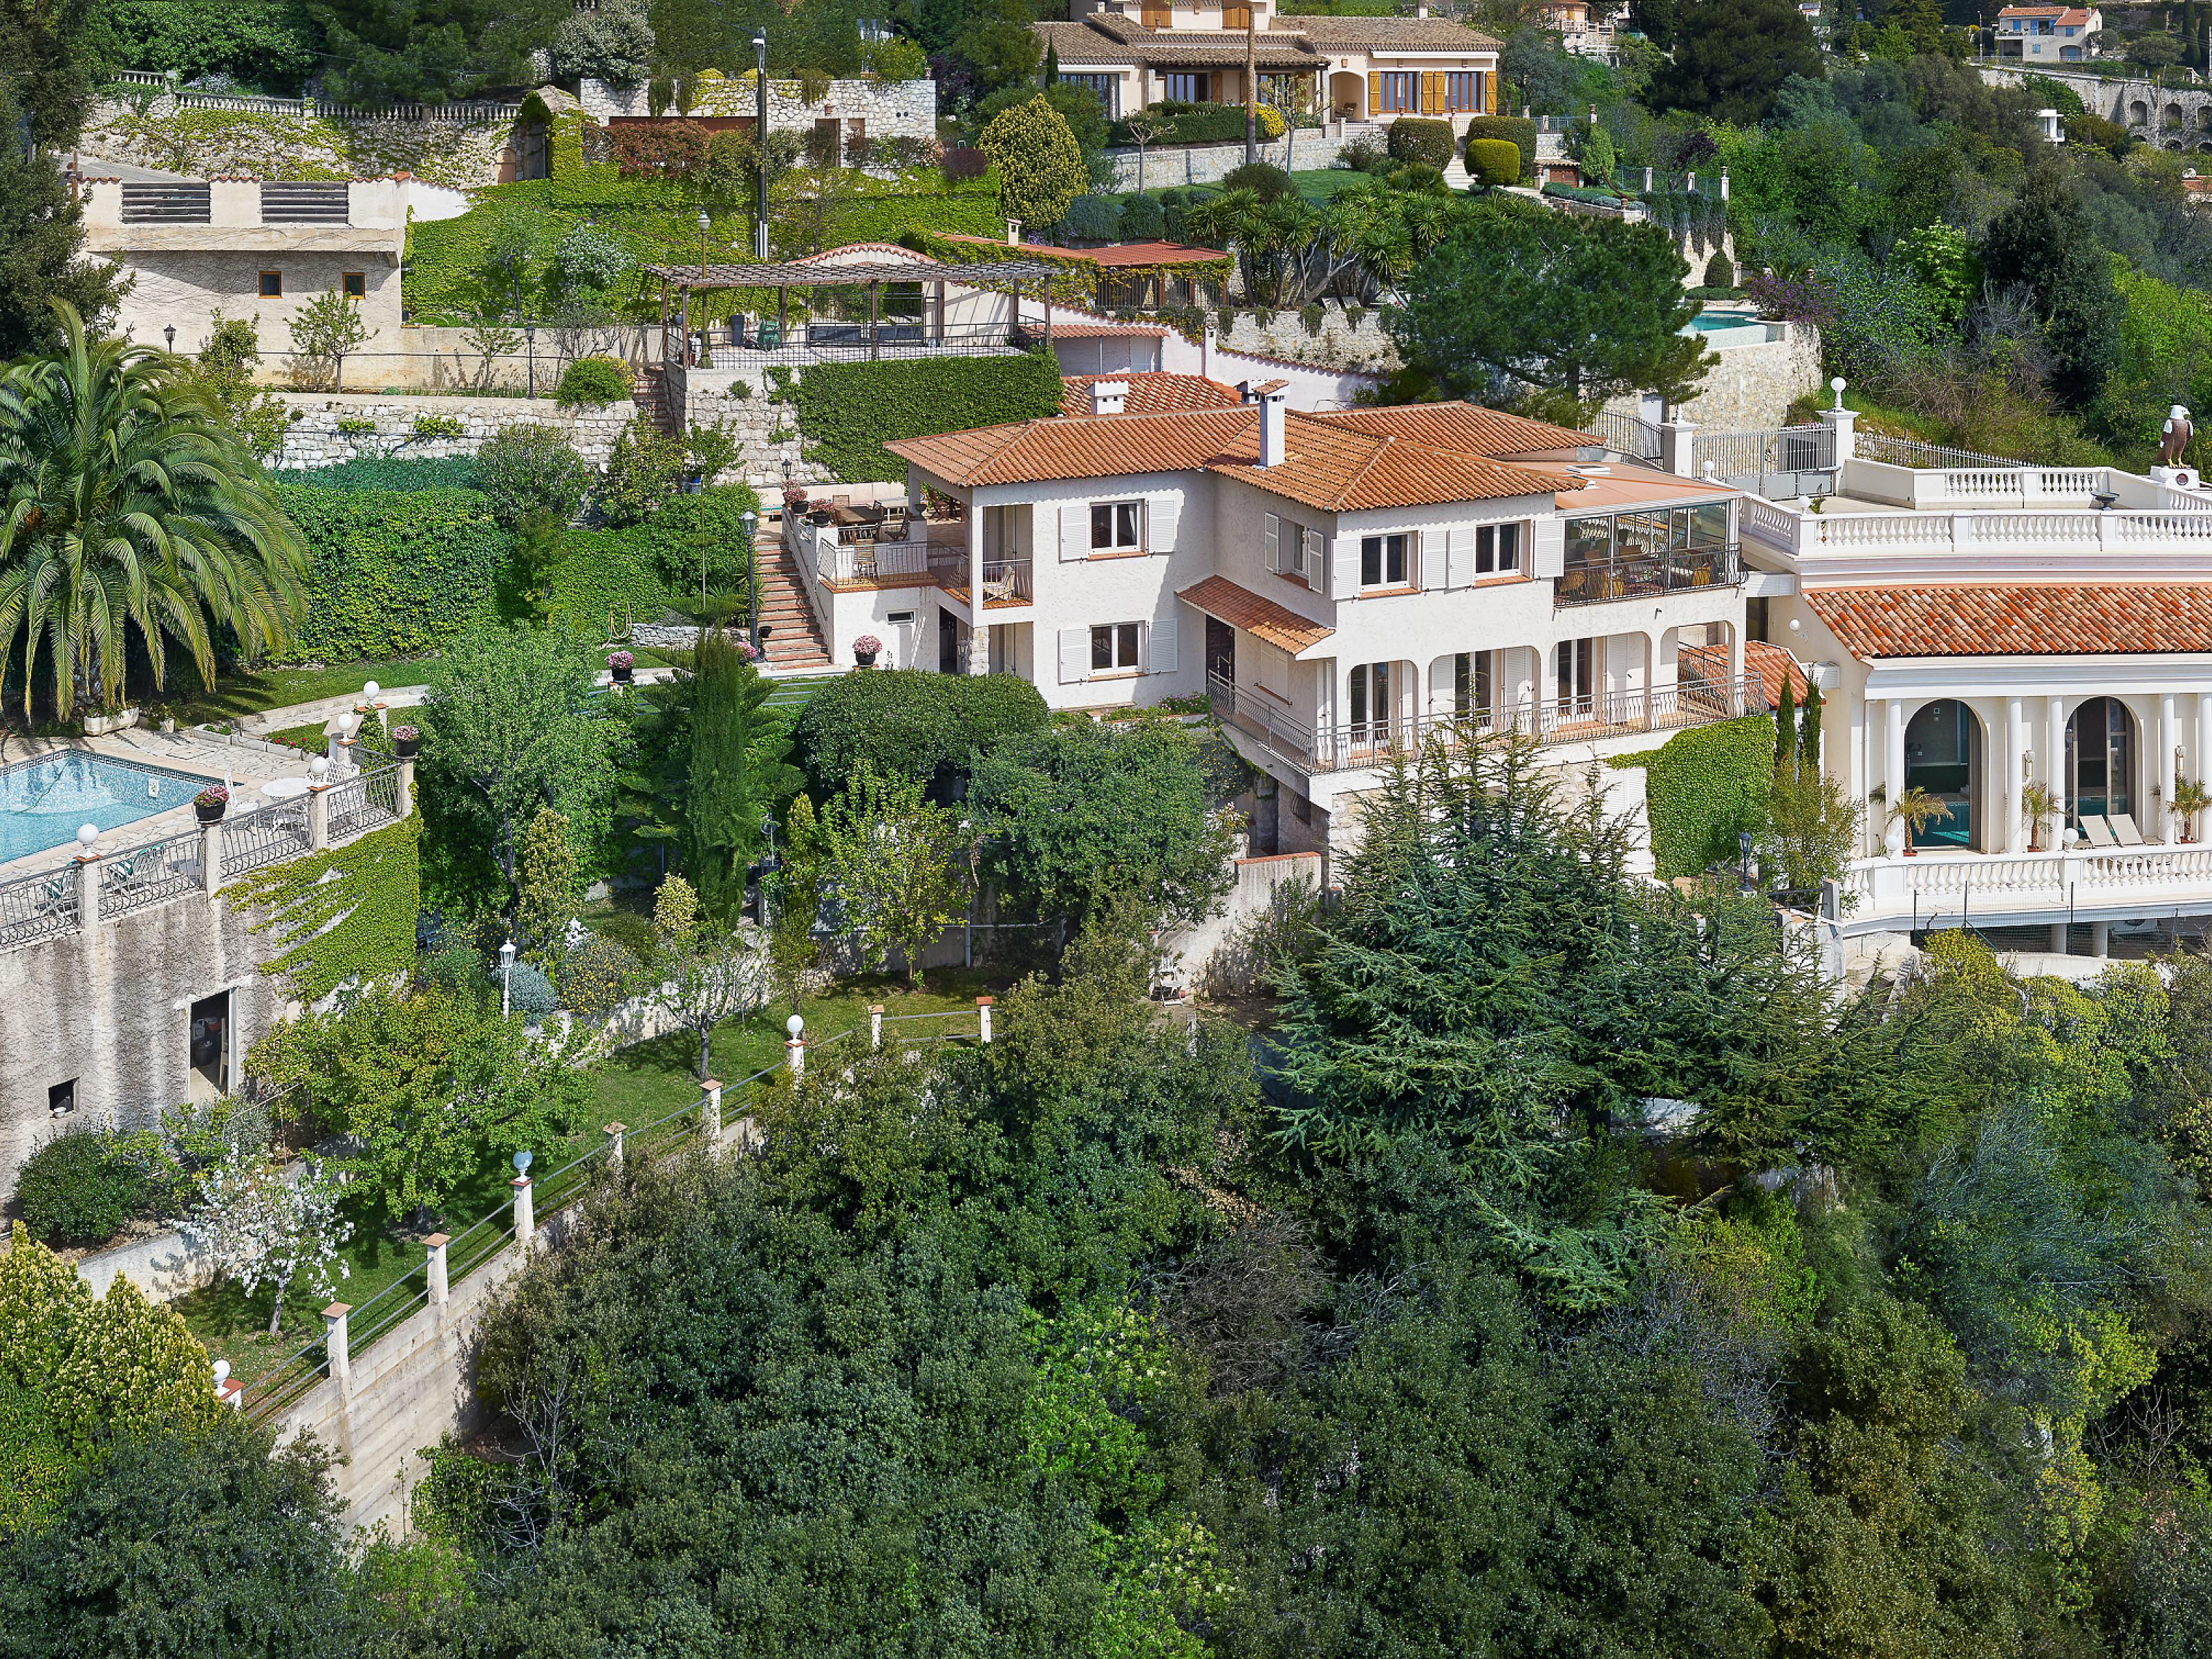 獨棟家庭住宅 為 出售 在 'Belle Epoque' style villa with panoramic views over the Sea and Monaco La Turbie Other Provence-Alpes-Cote D'Azur, 普羅旺斯阿爾卑斯藍色海岸 06320 法國